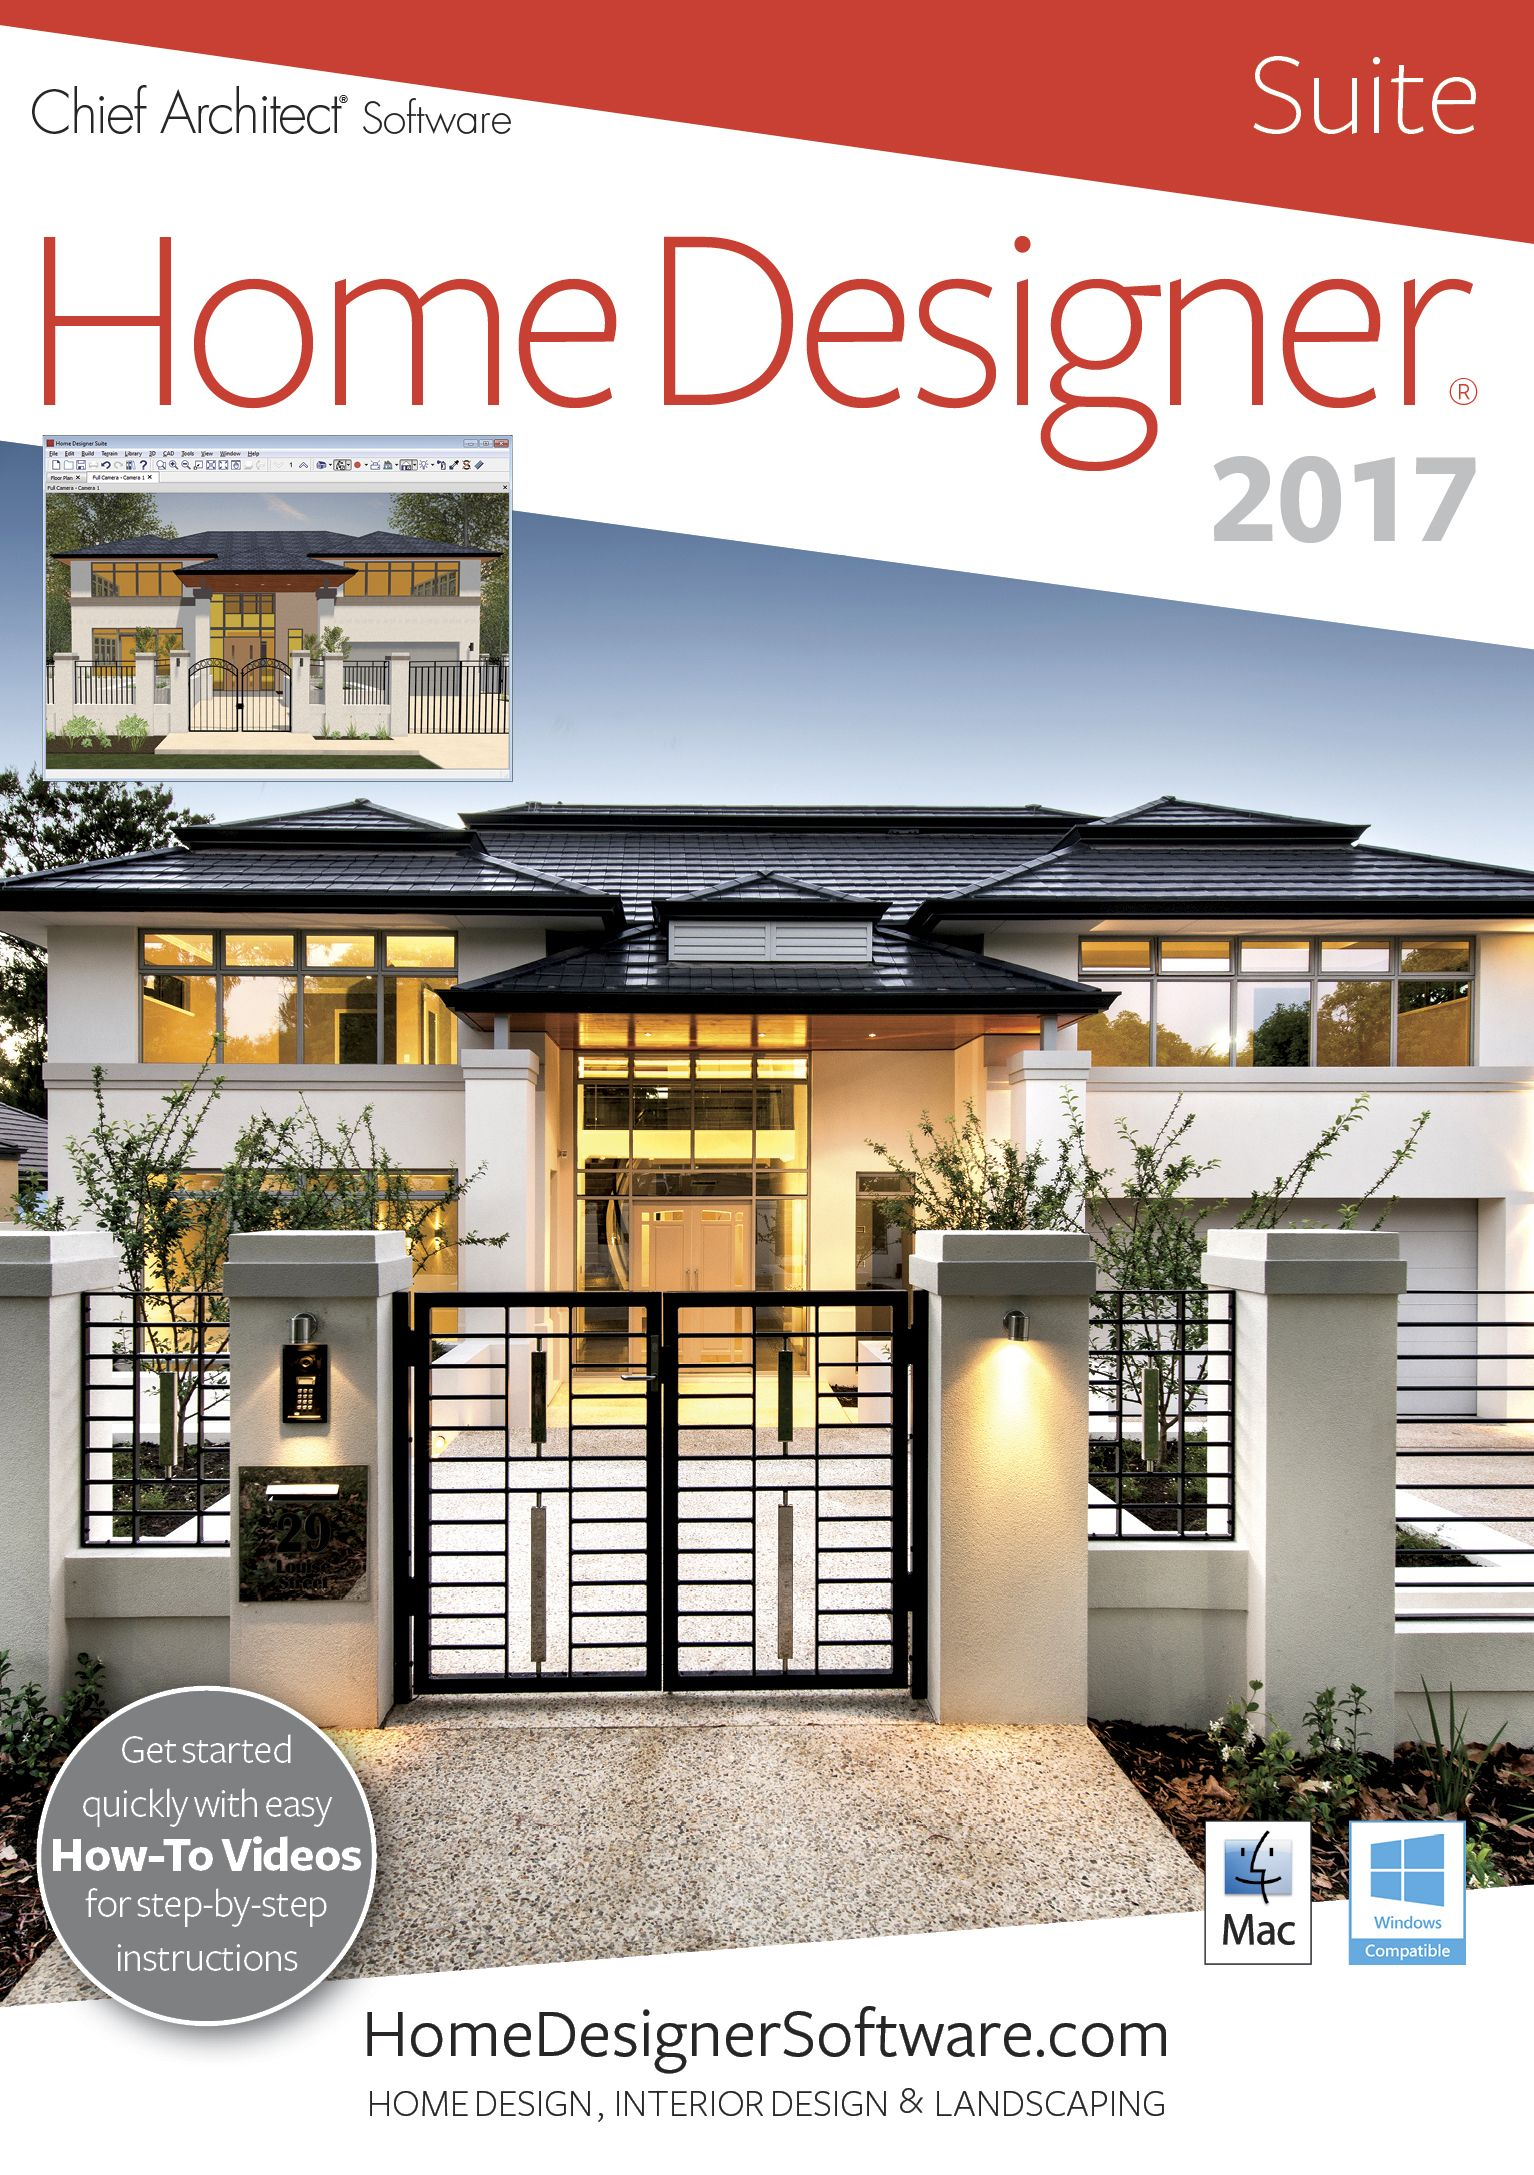 home designer suite 2017 pc read more reviews of the product by